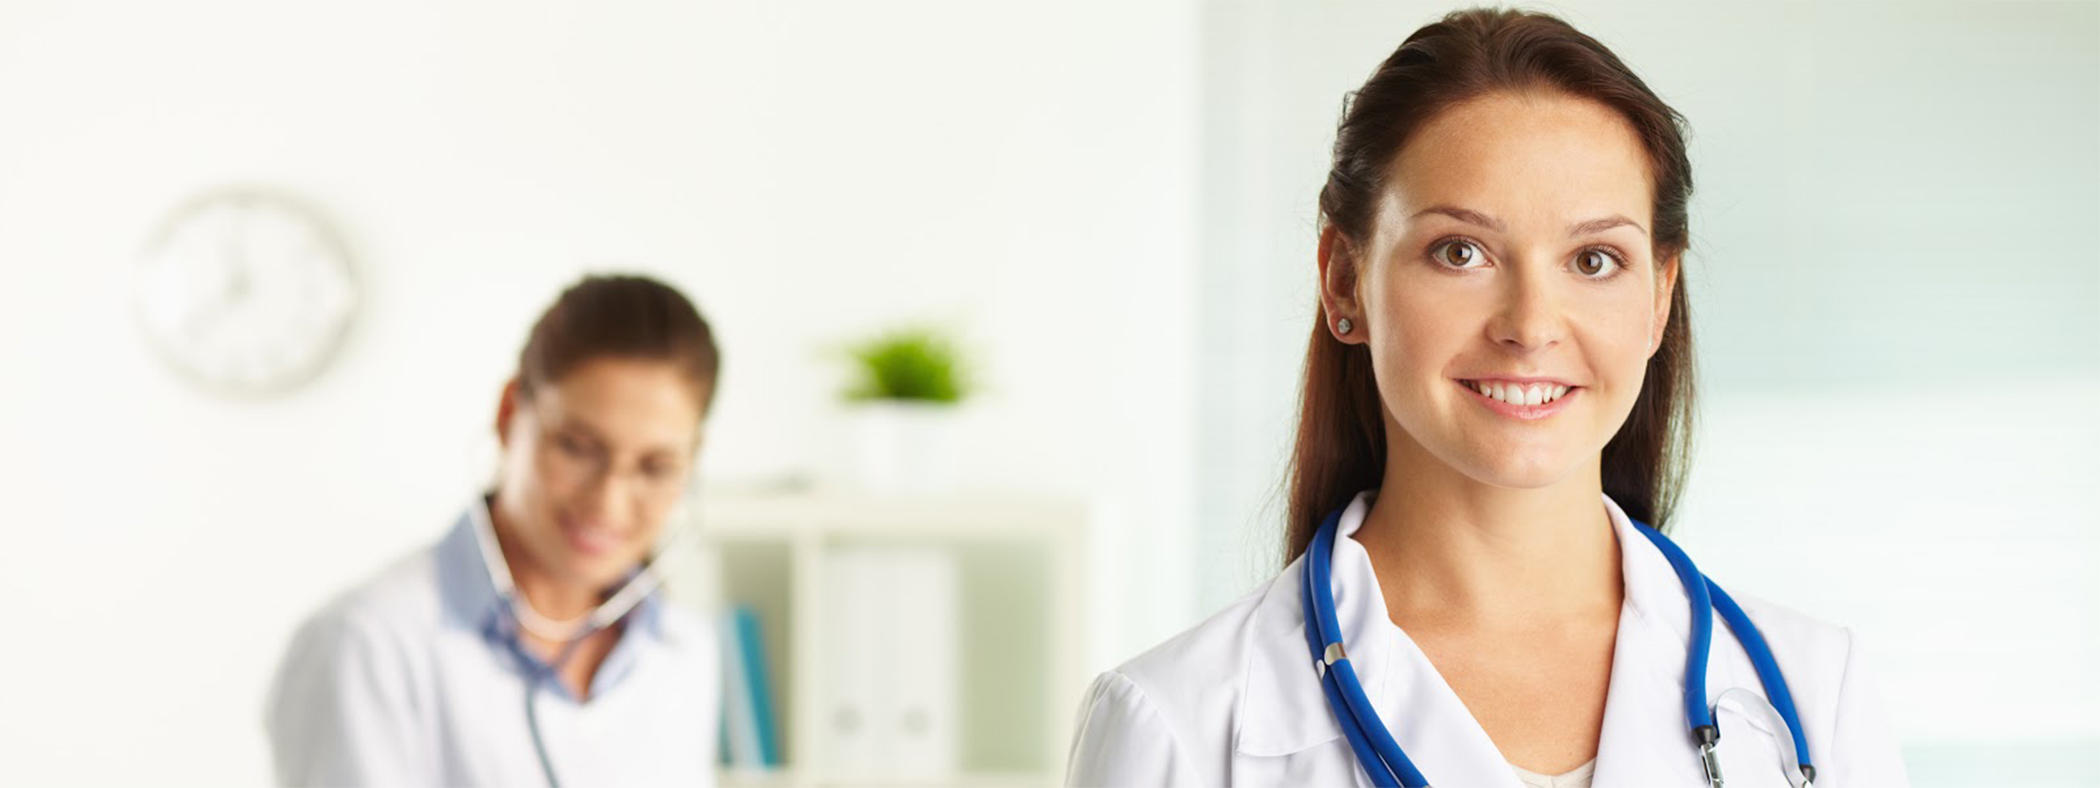 This image shows two female nurses. The nurse on the left is slightly blurry and further in the background using a stethoscope. The nurse on the right is in the forefront smiling and wearing a stethoscope.